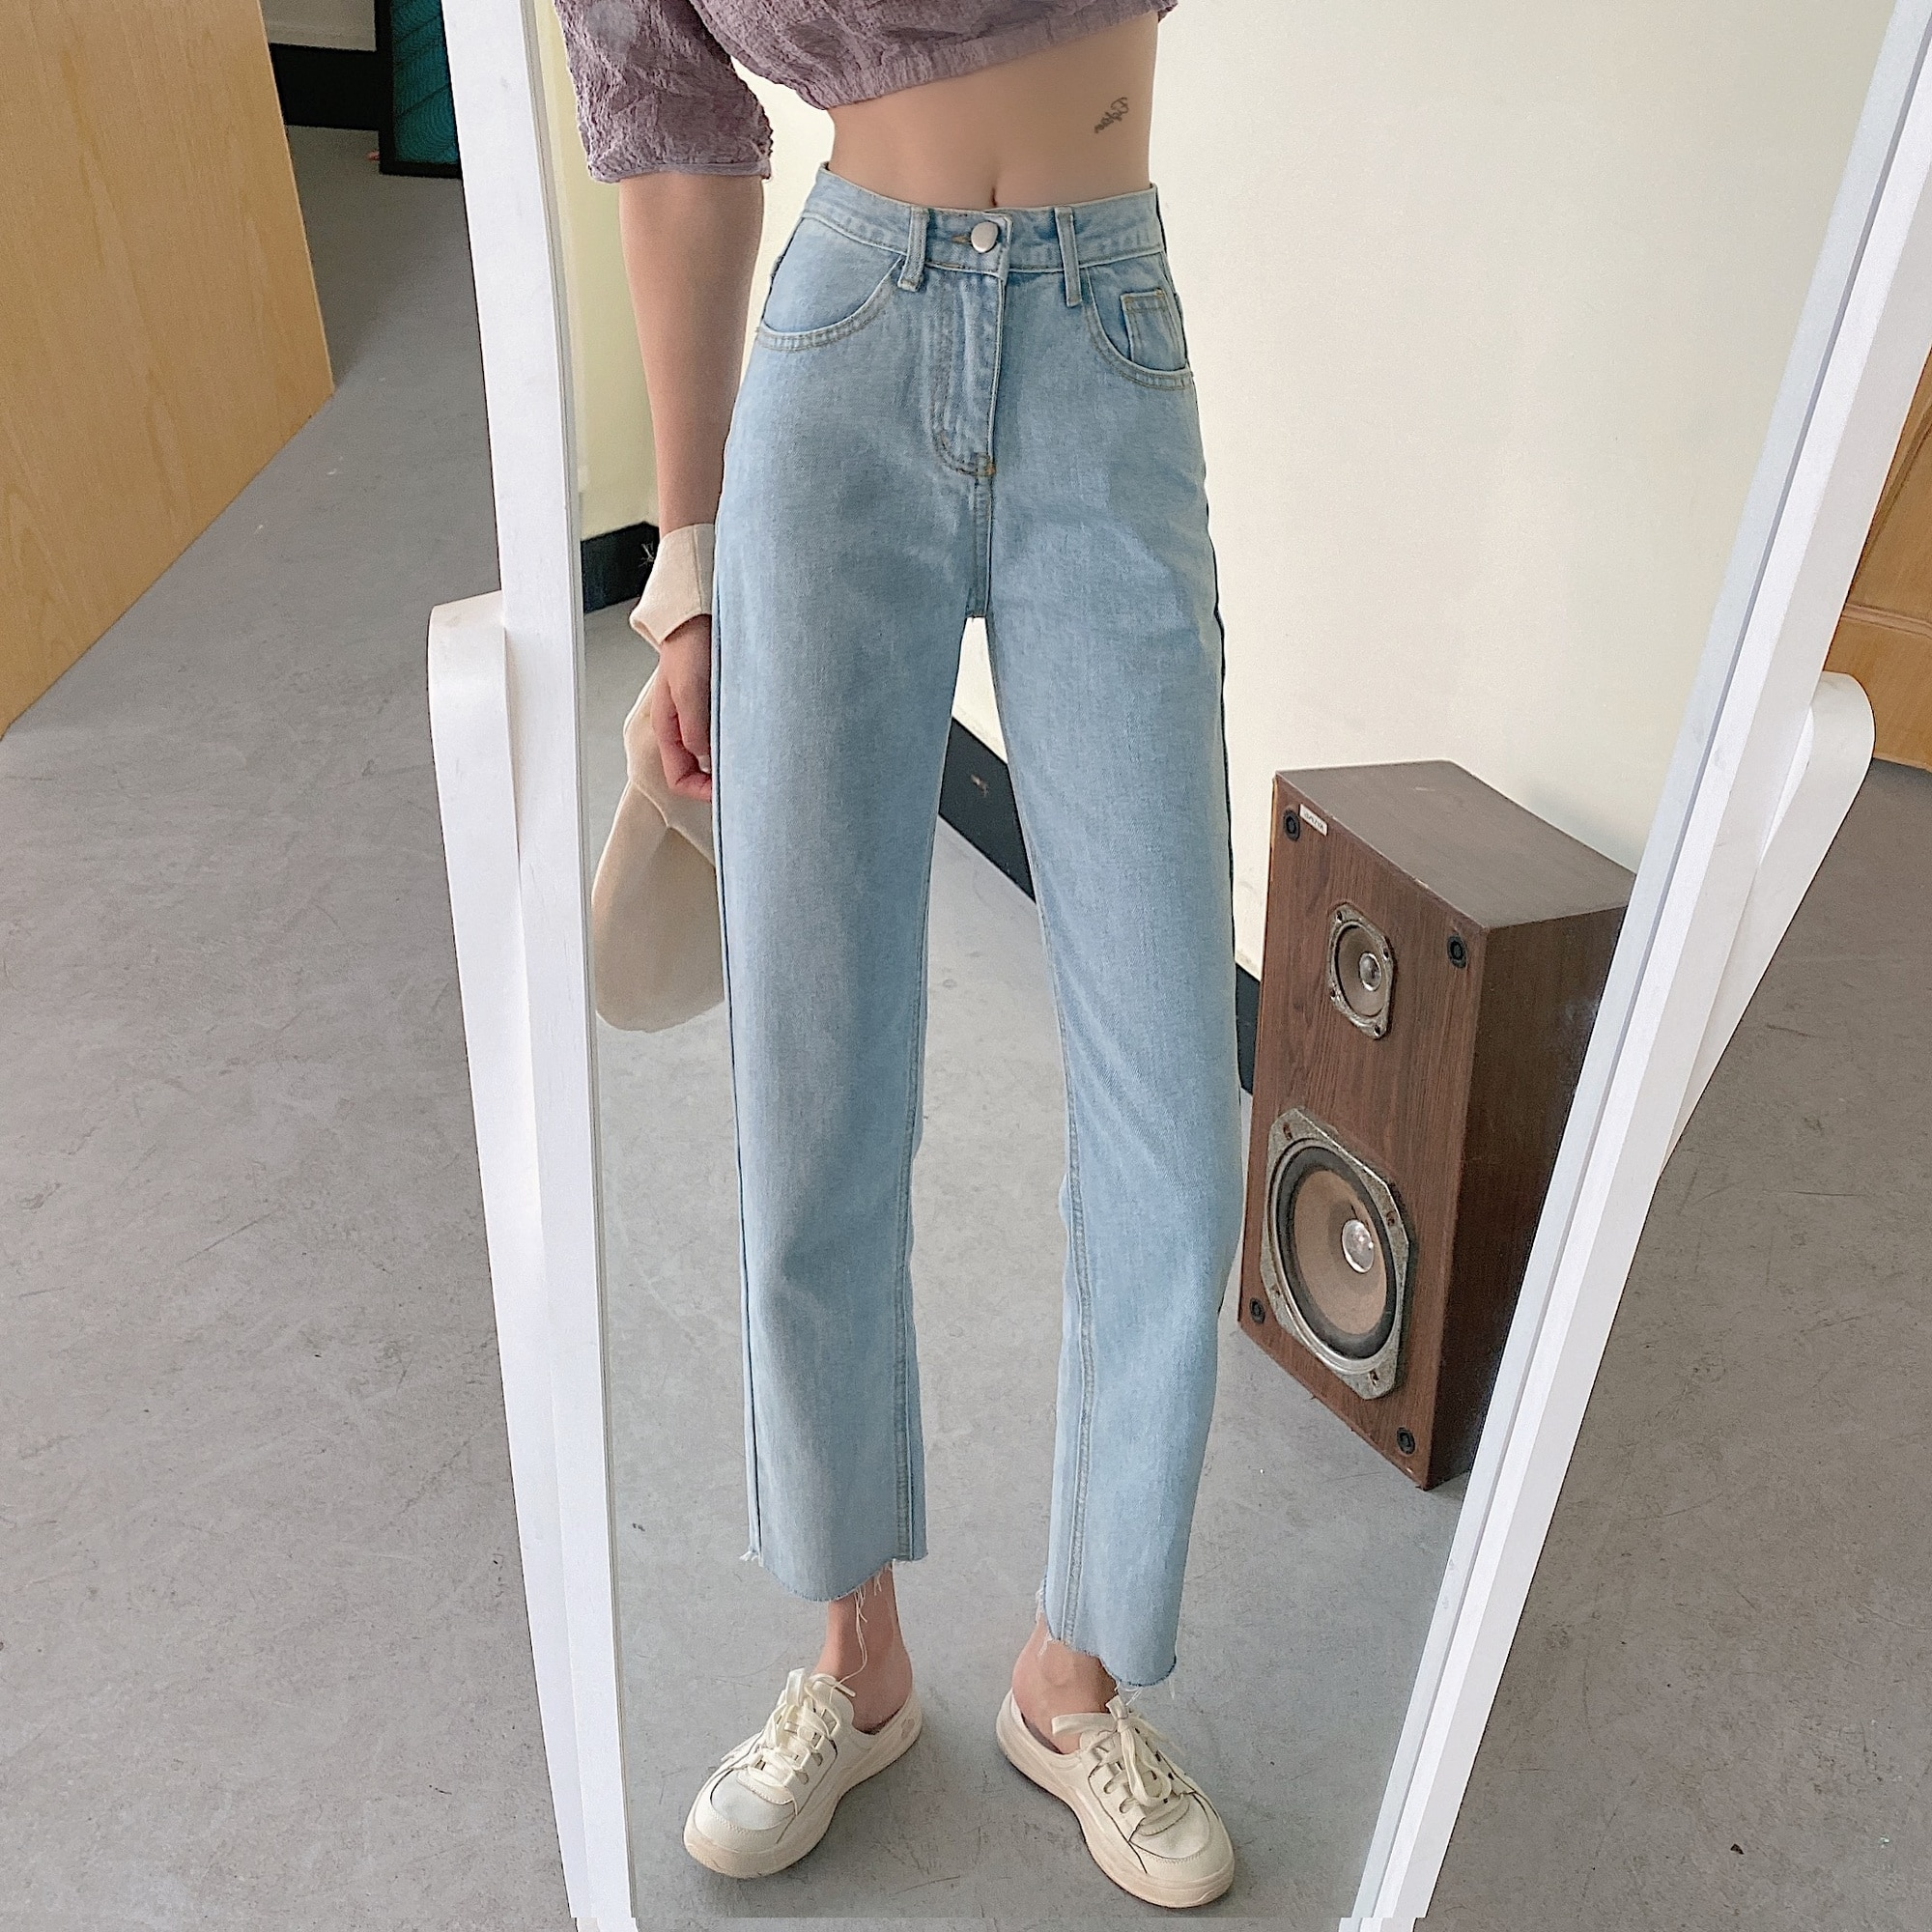 Small Cropped Jeans for Women 2021summer New Internet Celebrity Xuan Ya High Waist Slimming Loose Pa